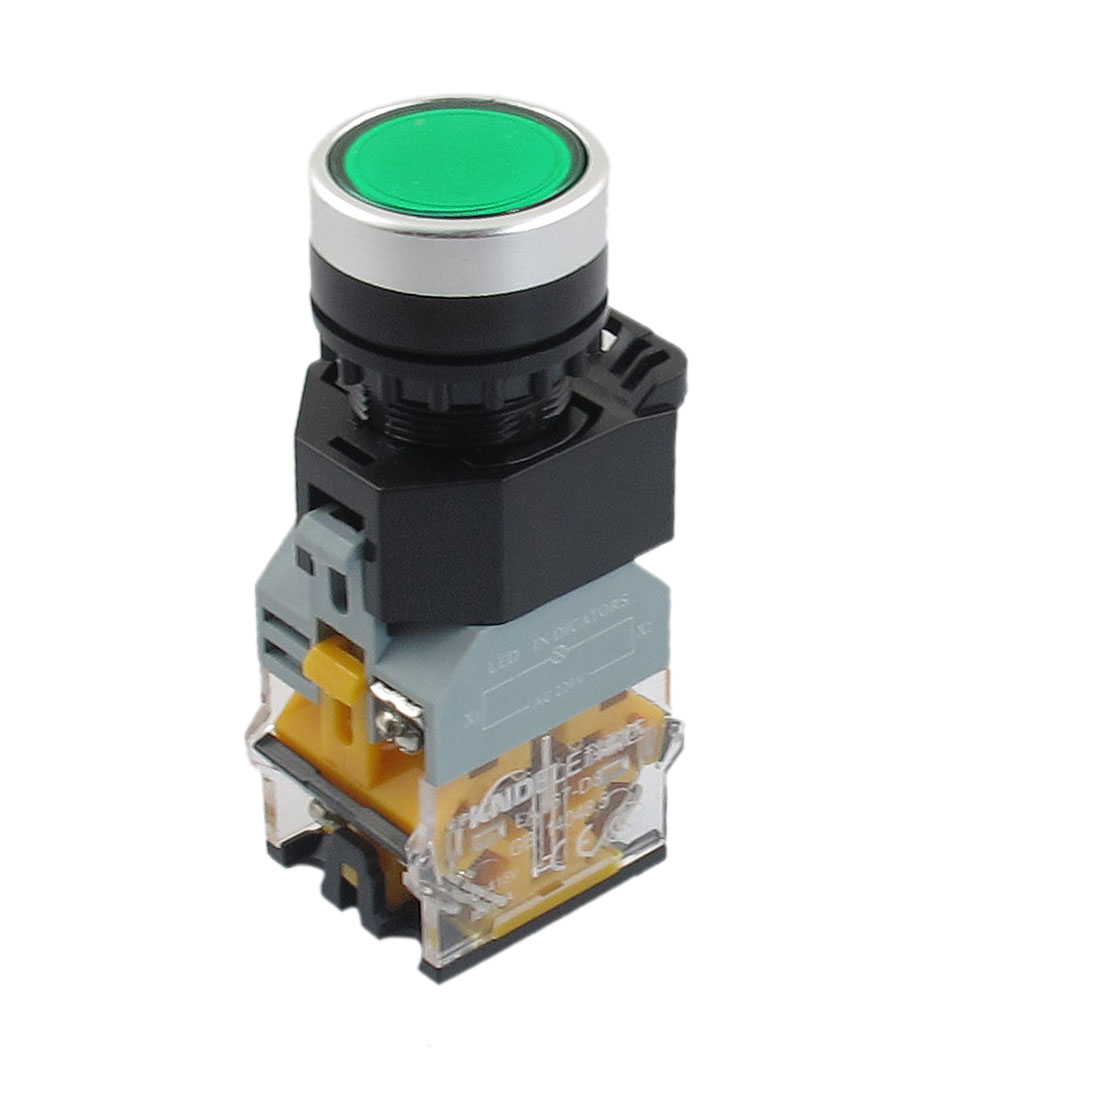 AC 220V Green LED Light Momentary Push Button Switch 22mm 1 NO 1 NC